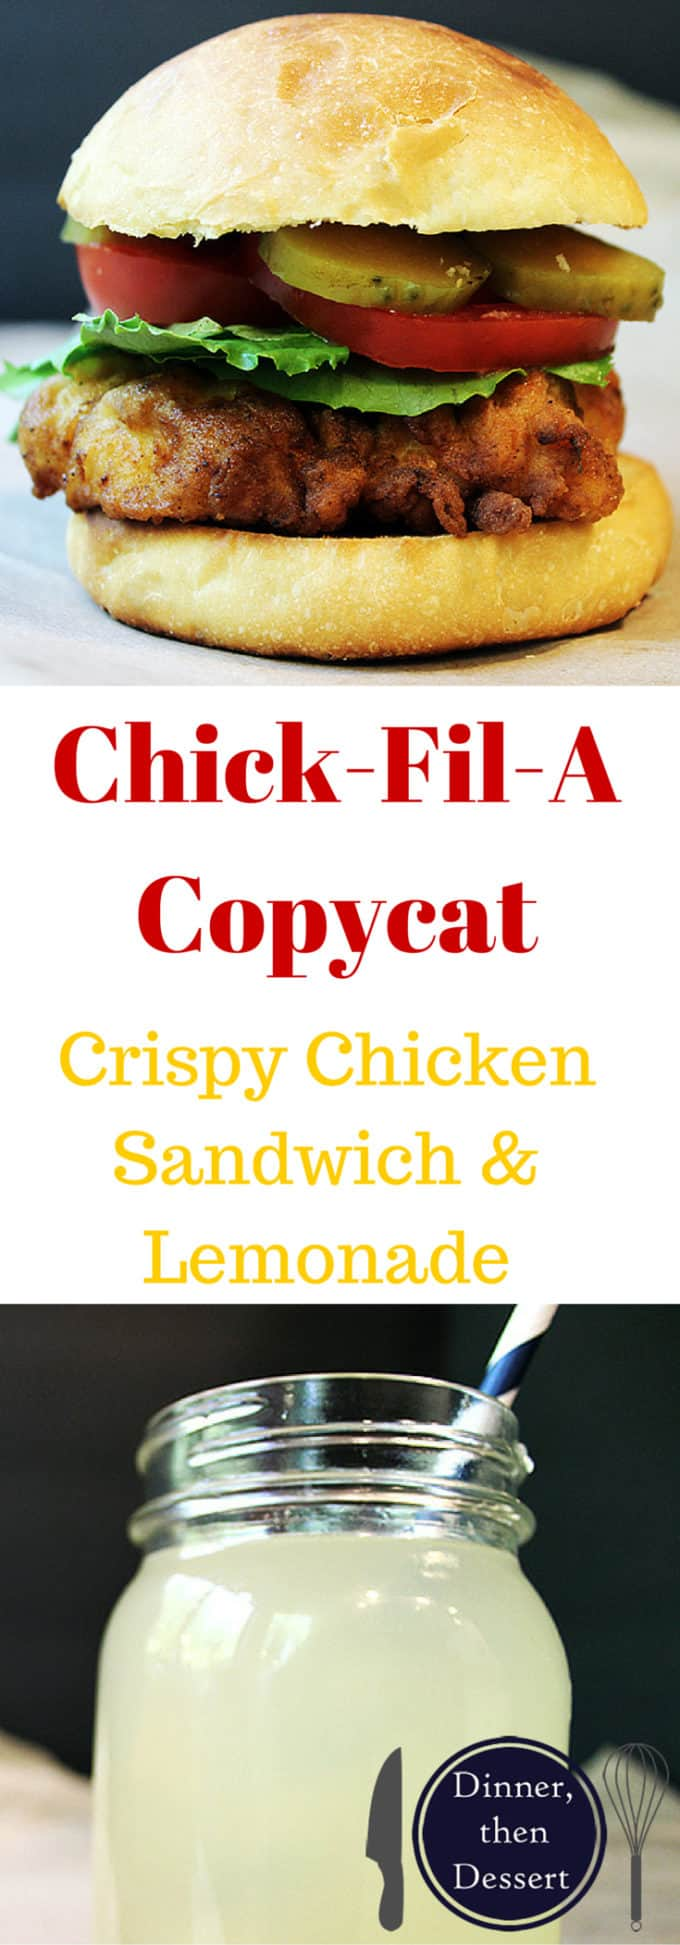 Chick-Fil-A Crispy Chicken Sandwich & Lemonade - The crispy, seasoned fried chicken sandwich we all love washed down with the best restaurant lemonade there is! Save the trip and the wait in the long lines!